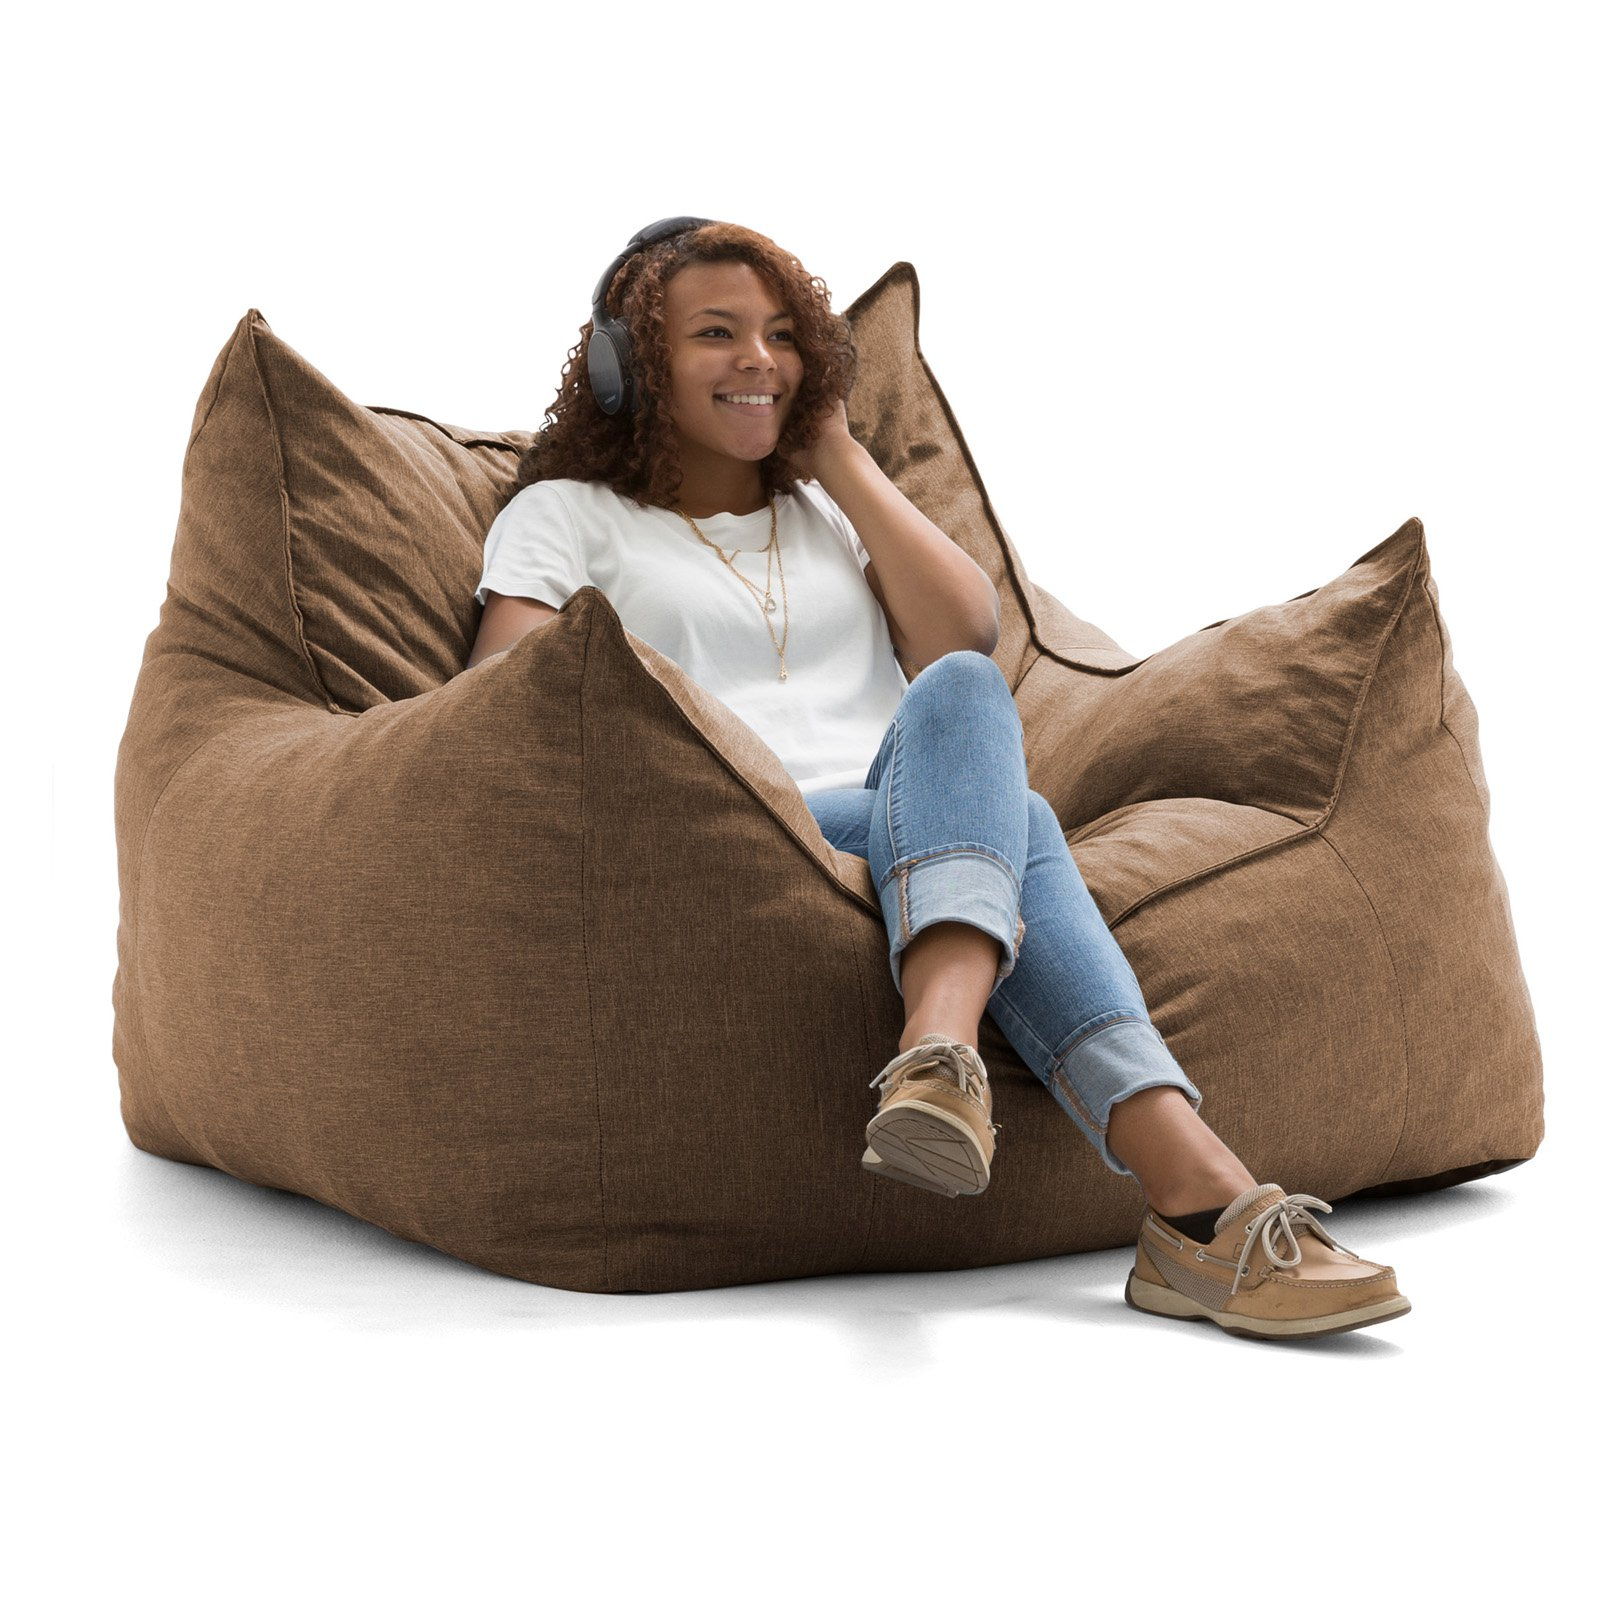 sc 1 st  Walmart : bean bag lounge chair - lorbestier.org